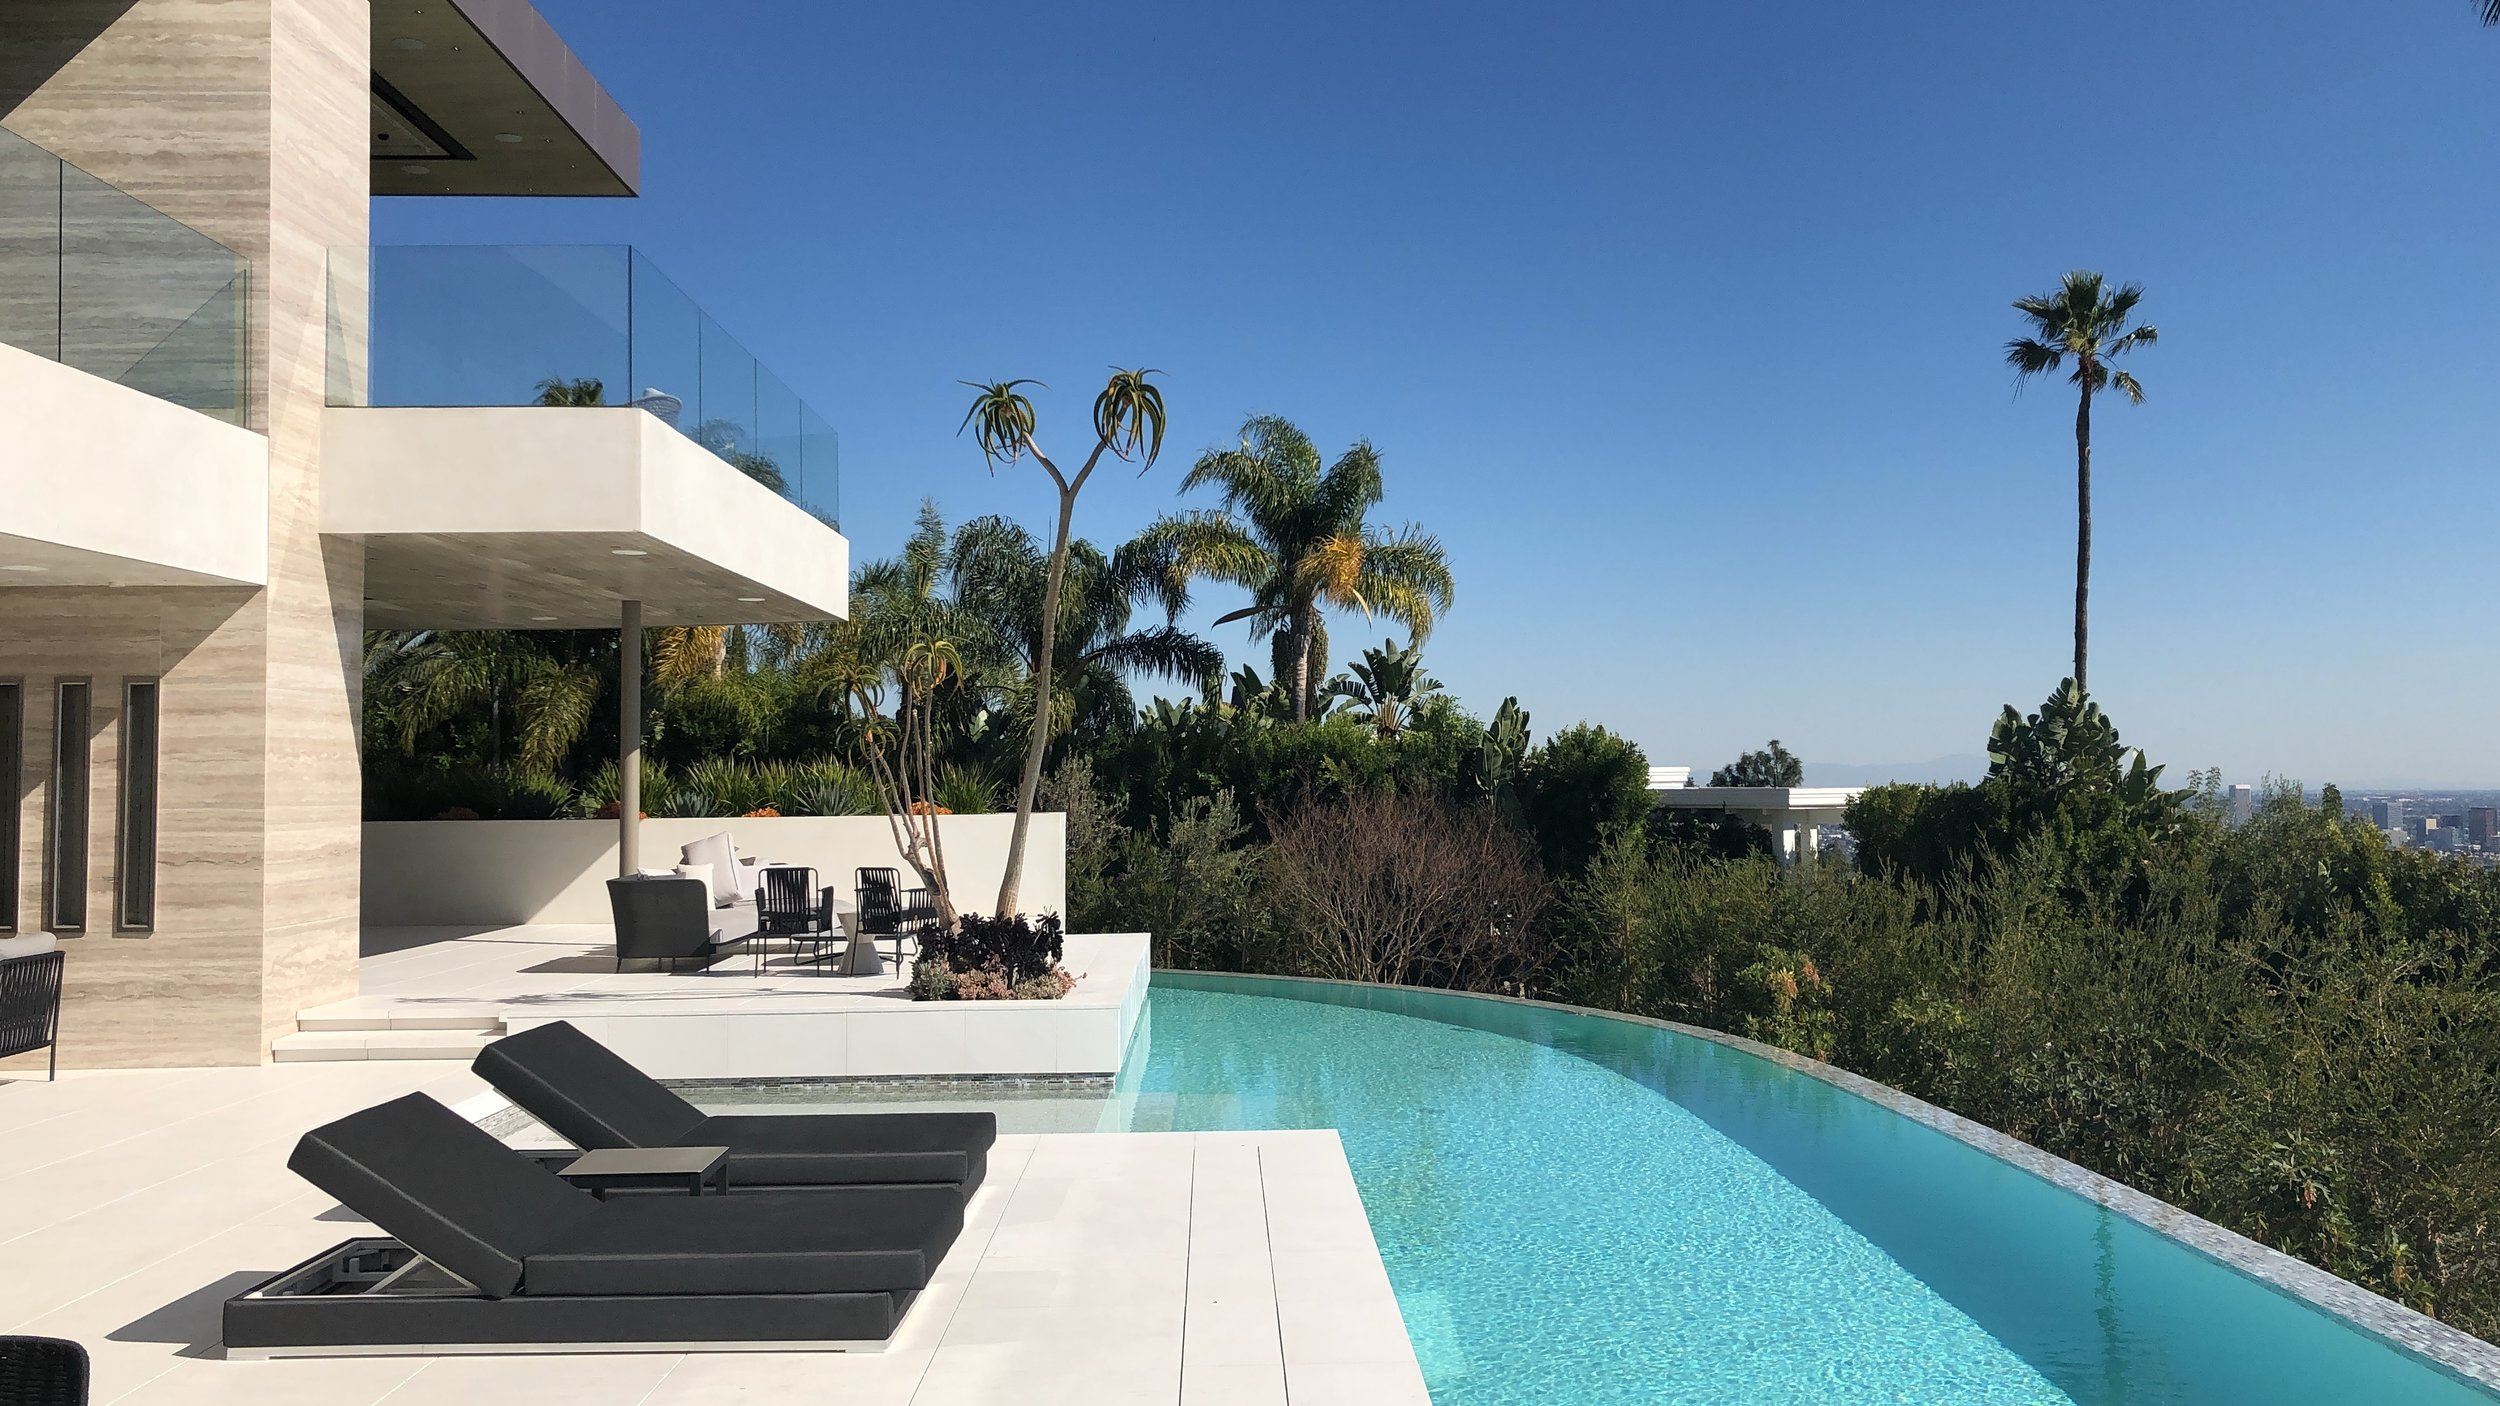 RESIDENTIAL   > Buy and sell homes securely in Los Angeles with our professional support.